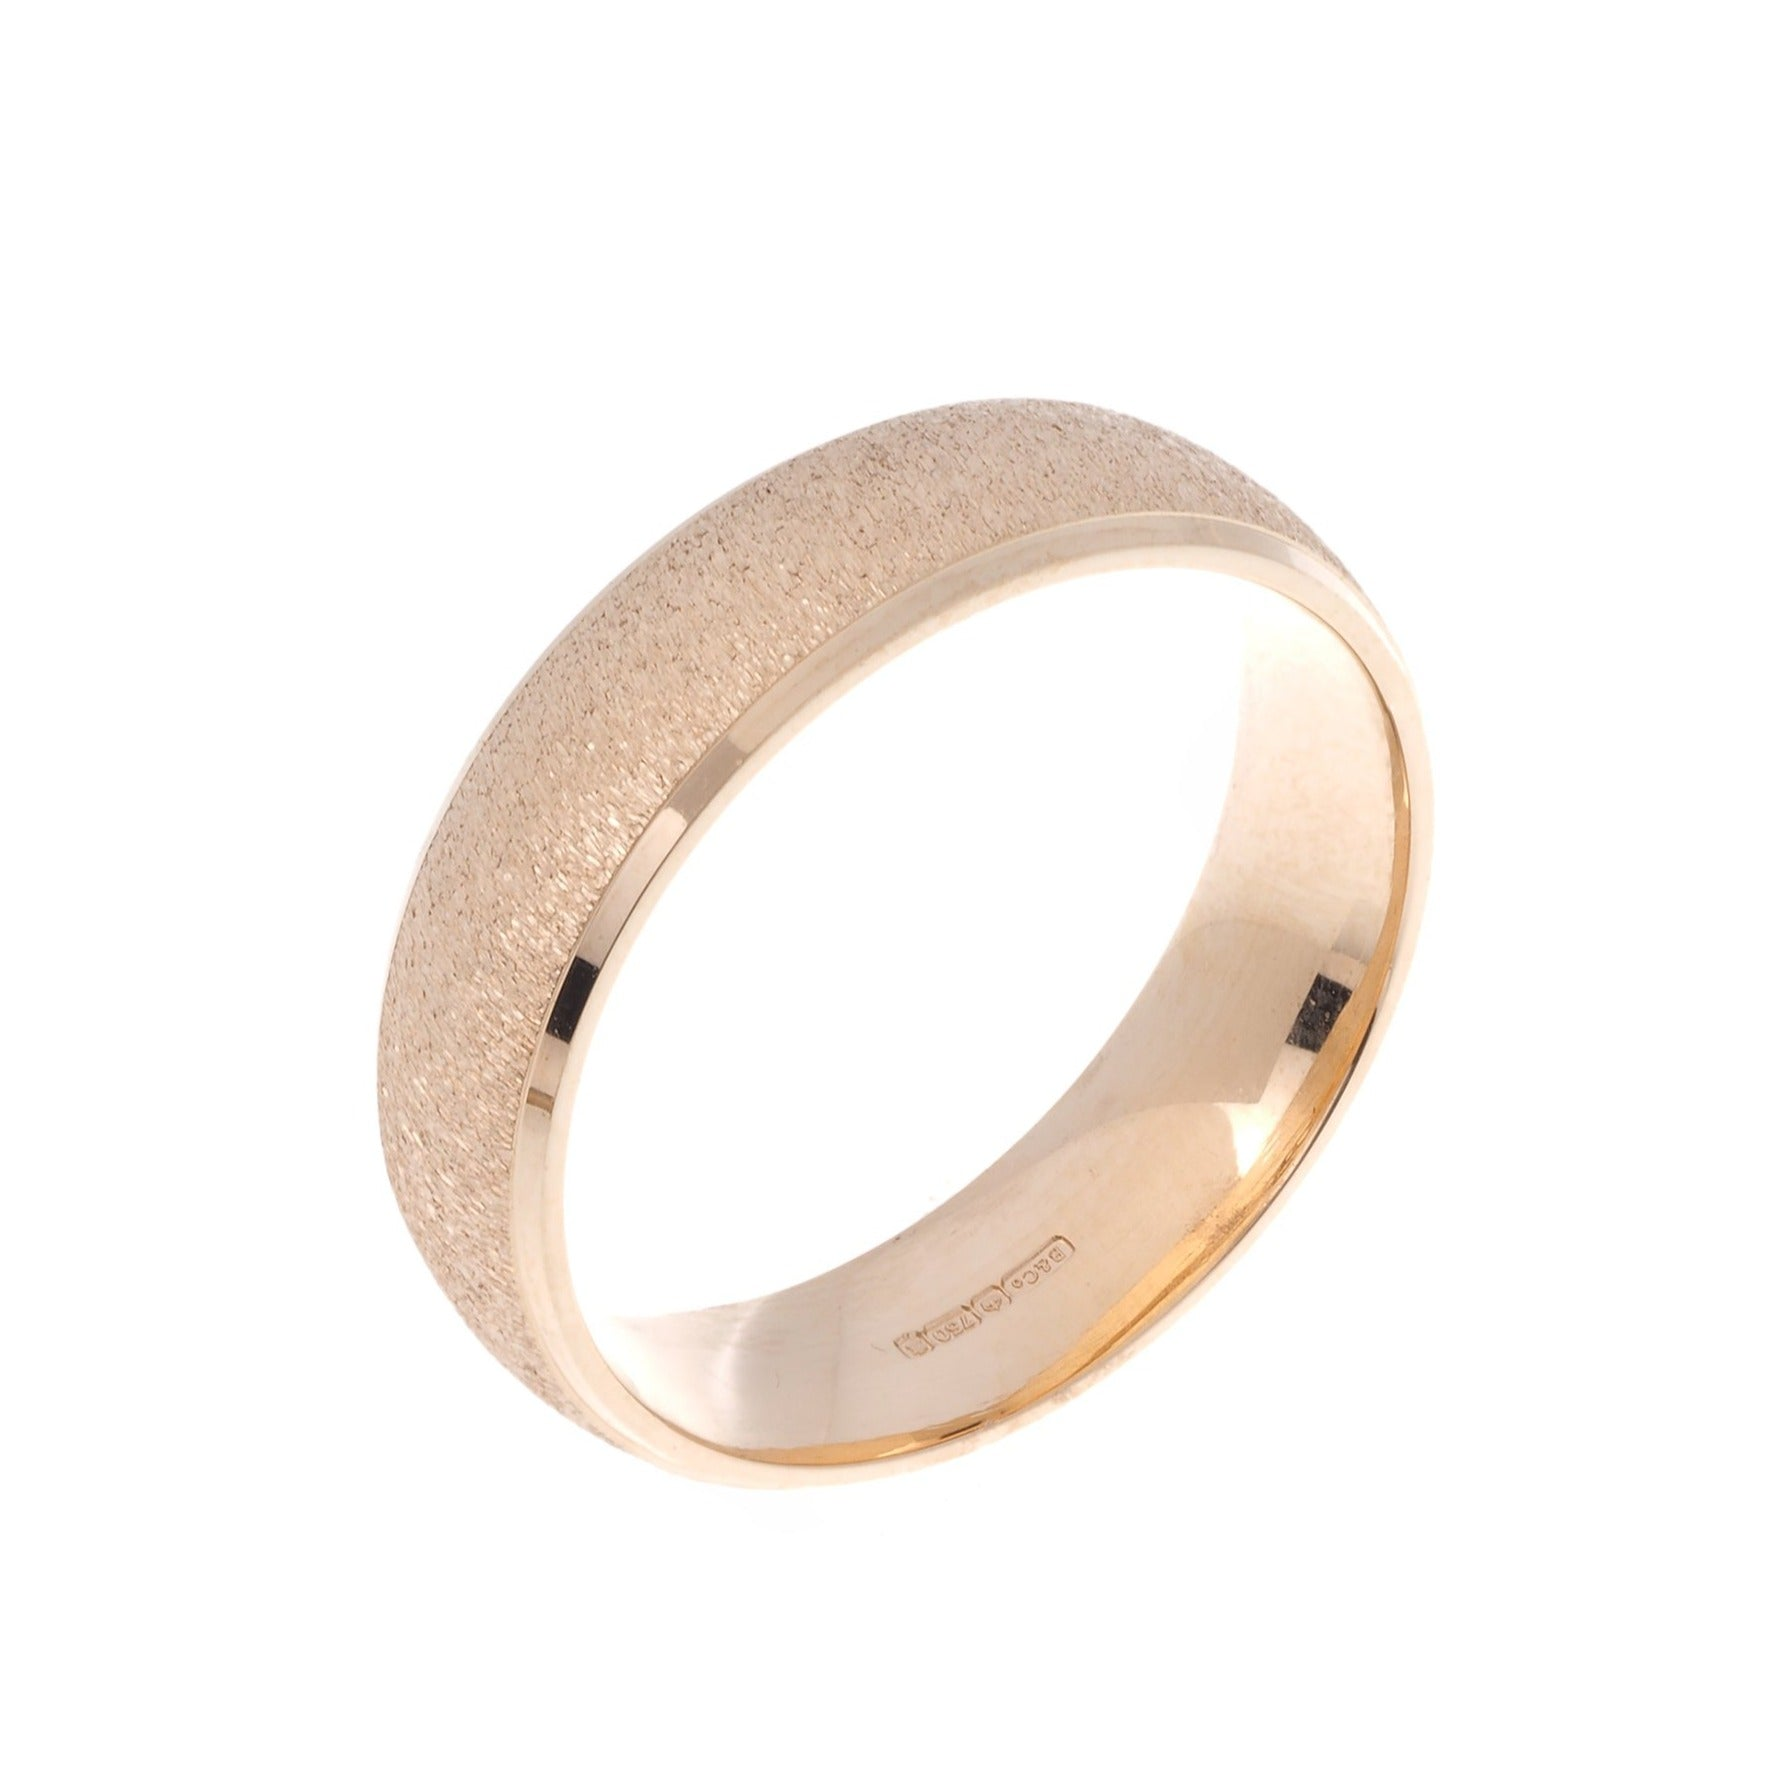 18ct 'Blush' Rose Gold Gents Flat Court Wedding Band with Diamond Cut Design R/WBUFHBlushDiaCut